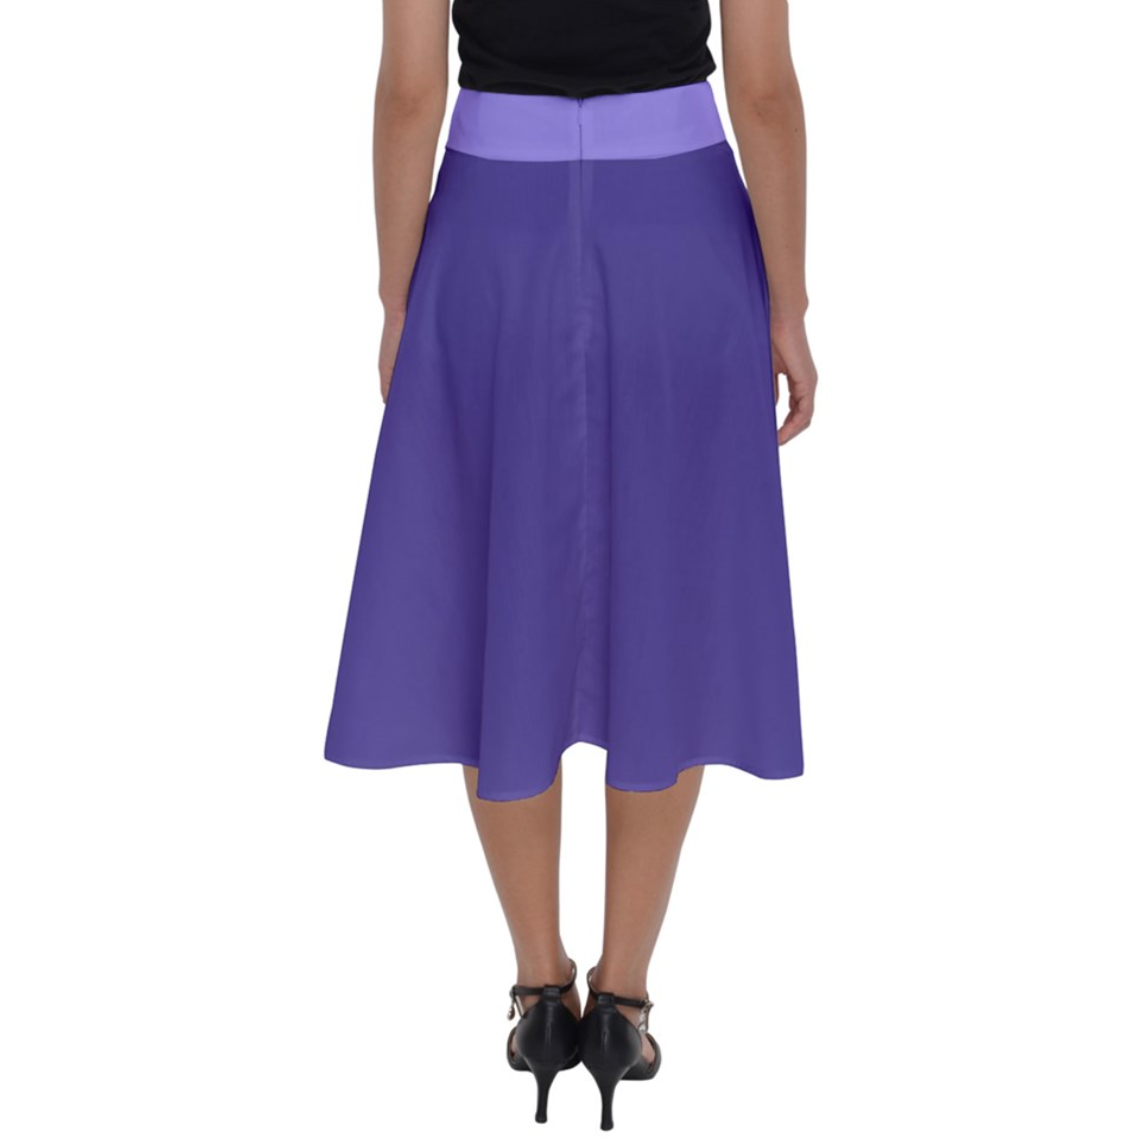 Charmed Perfect Length Midi Skirt (Purple Solid Colored)